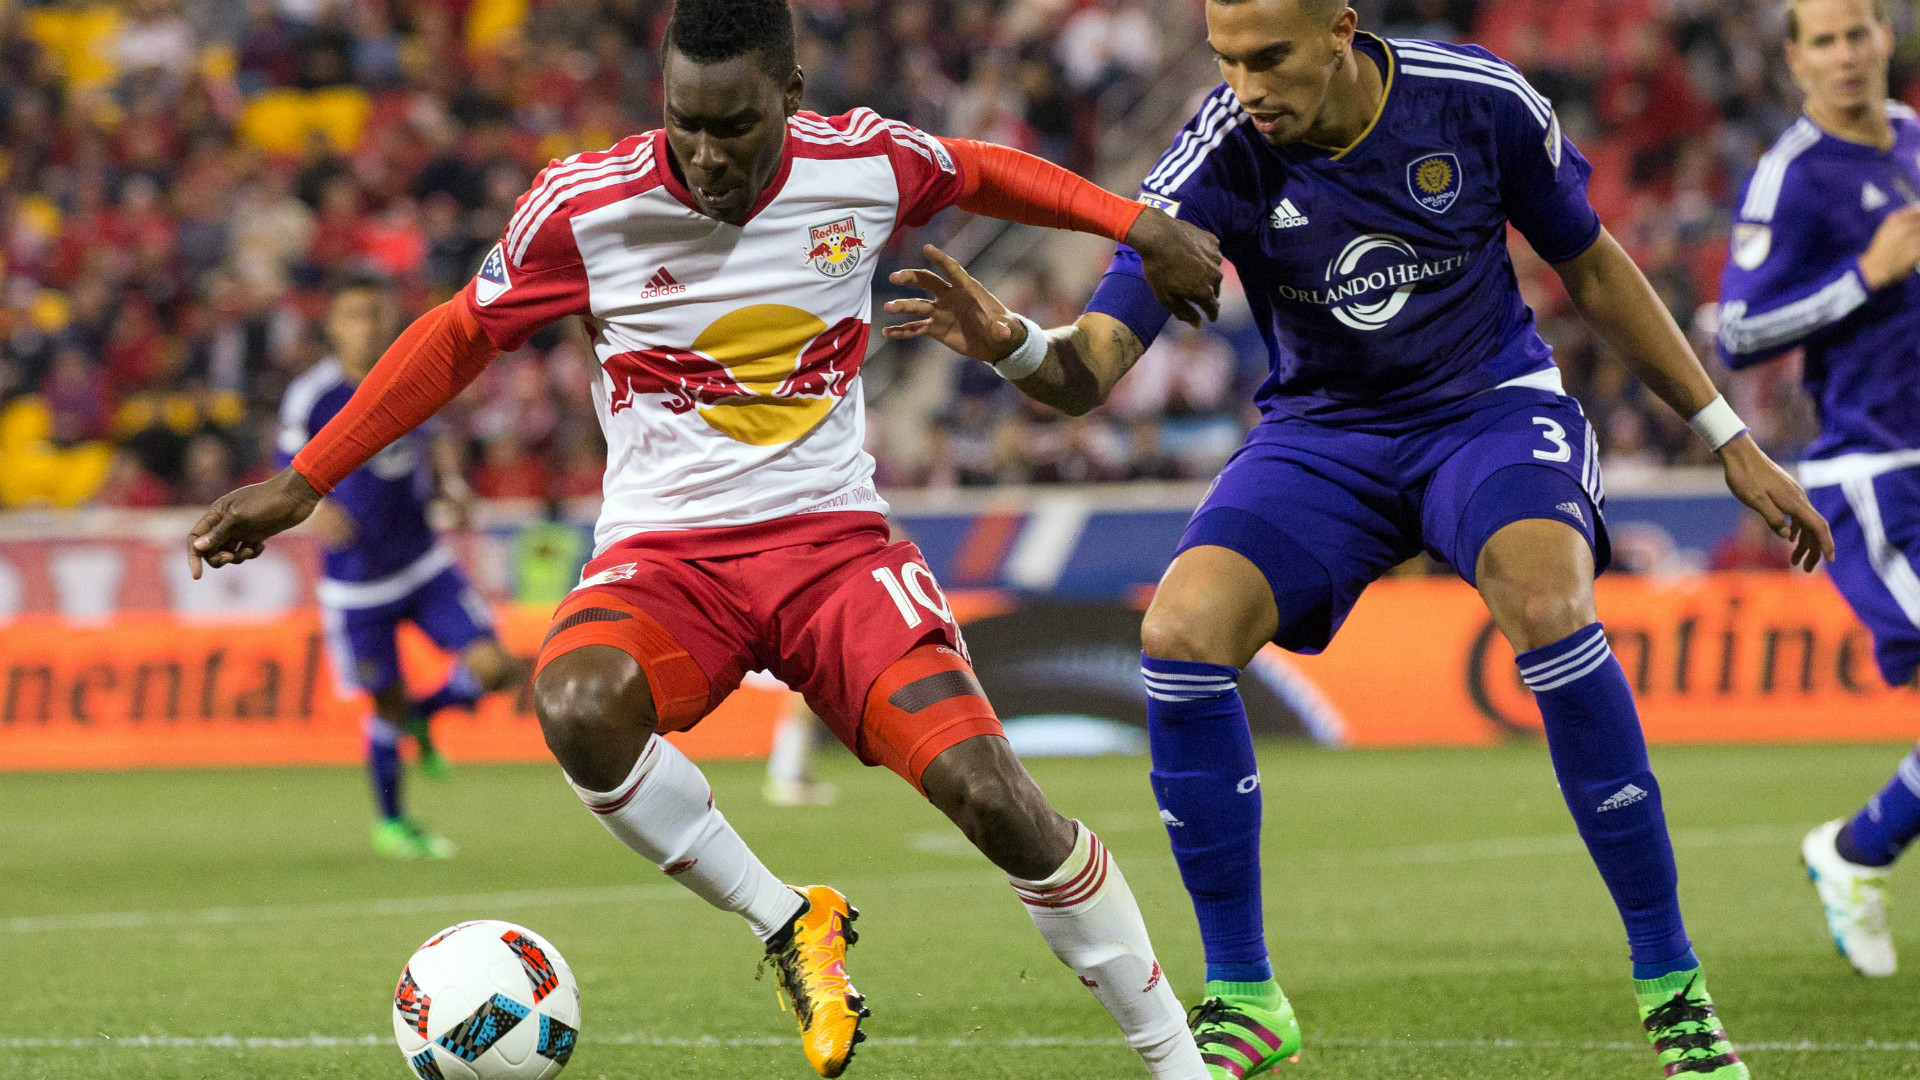 Red Bulls offense struggles to find form in post-Sam era